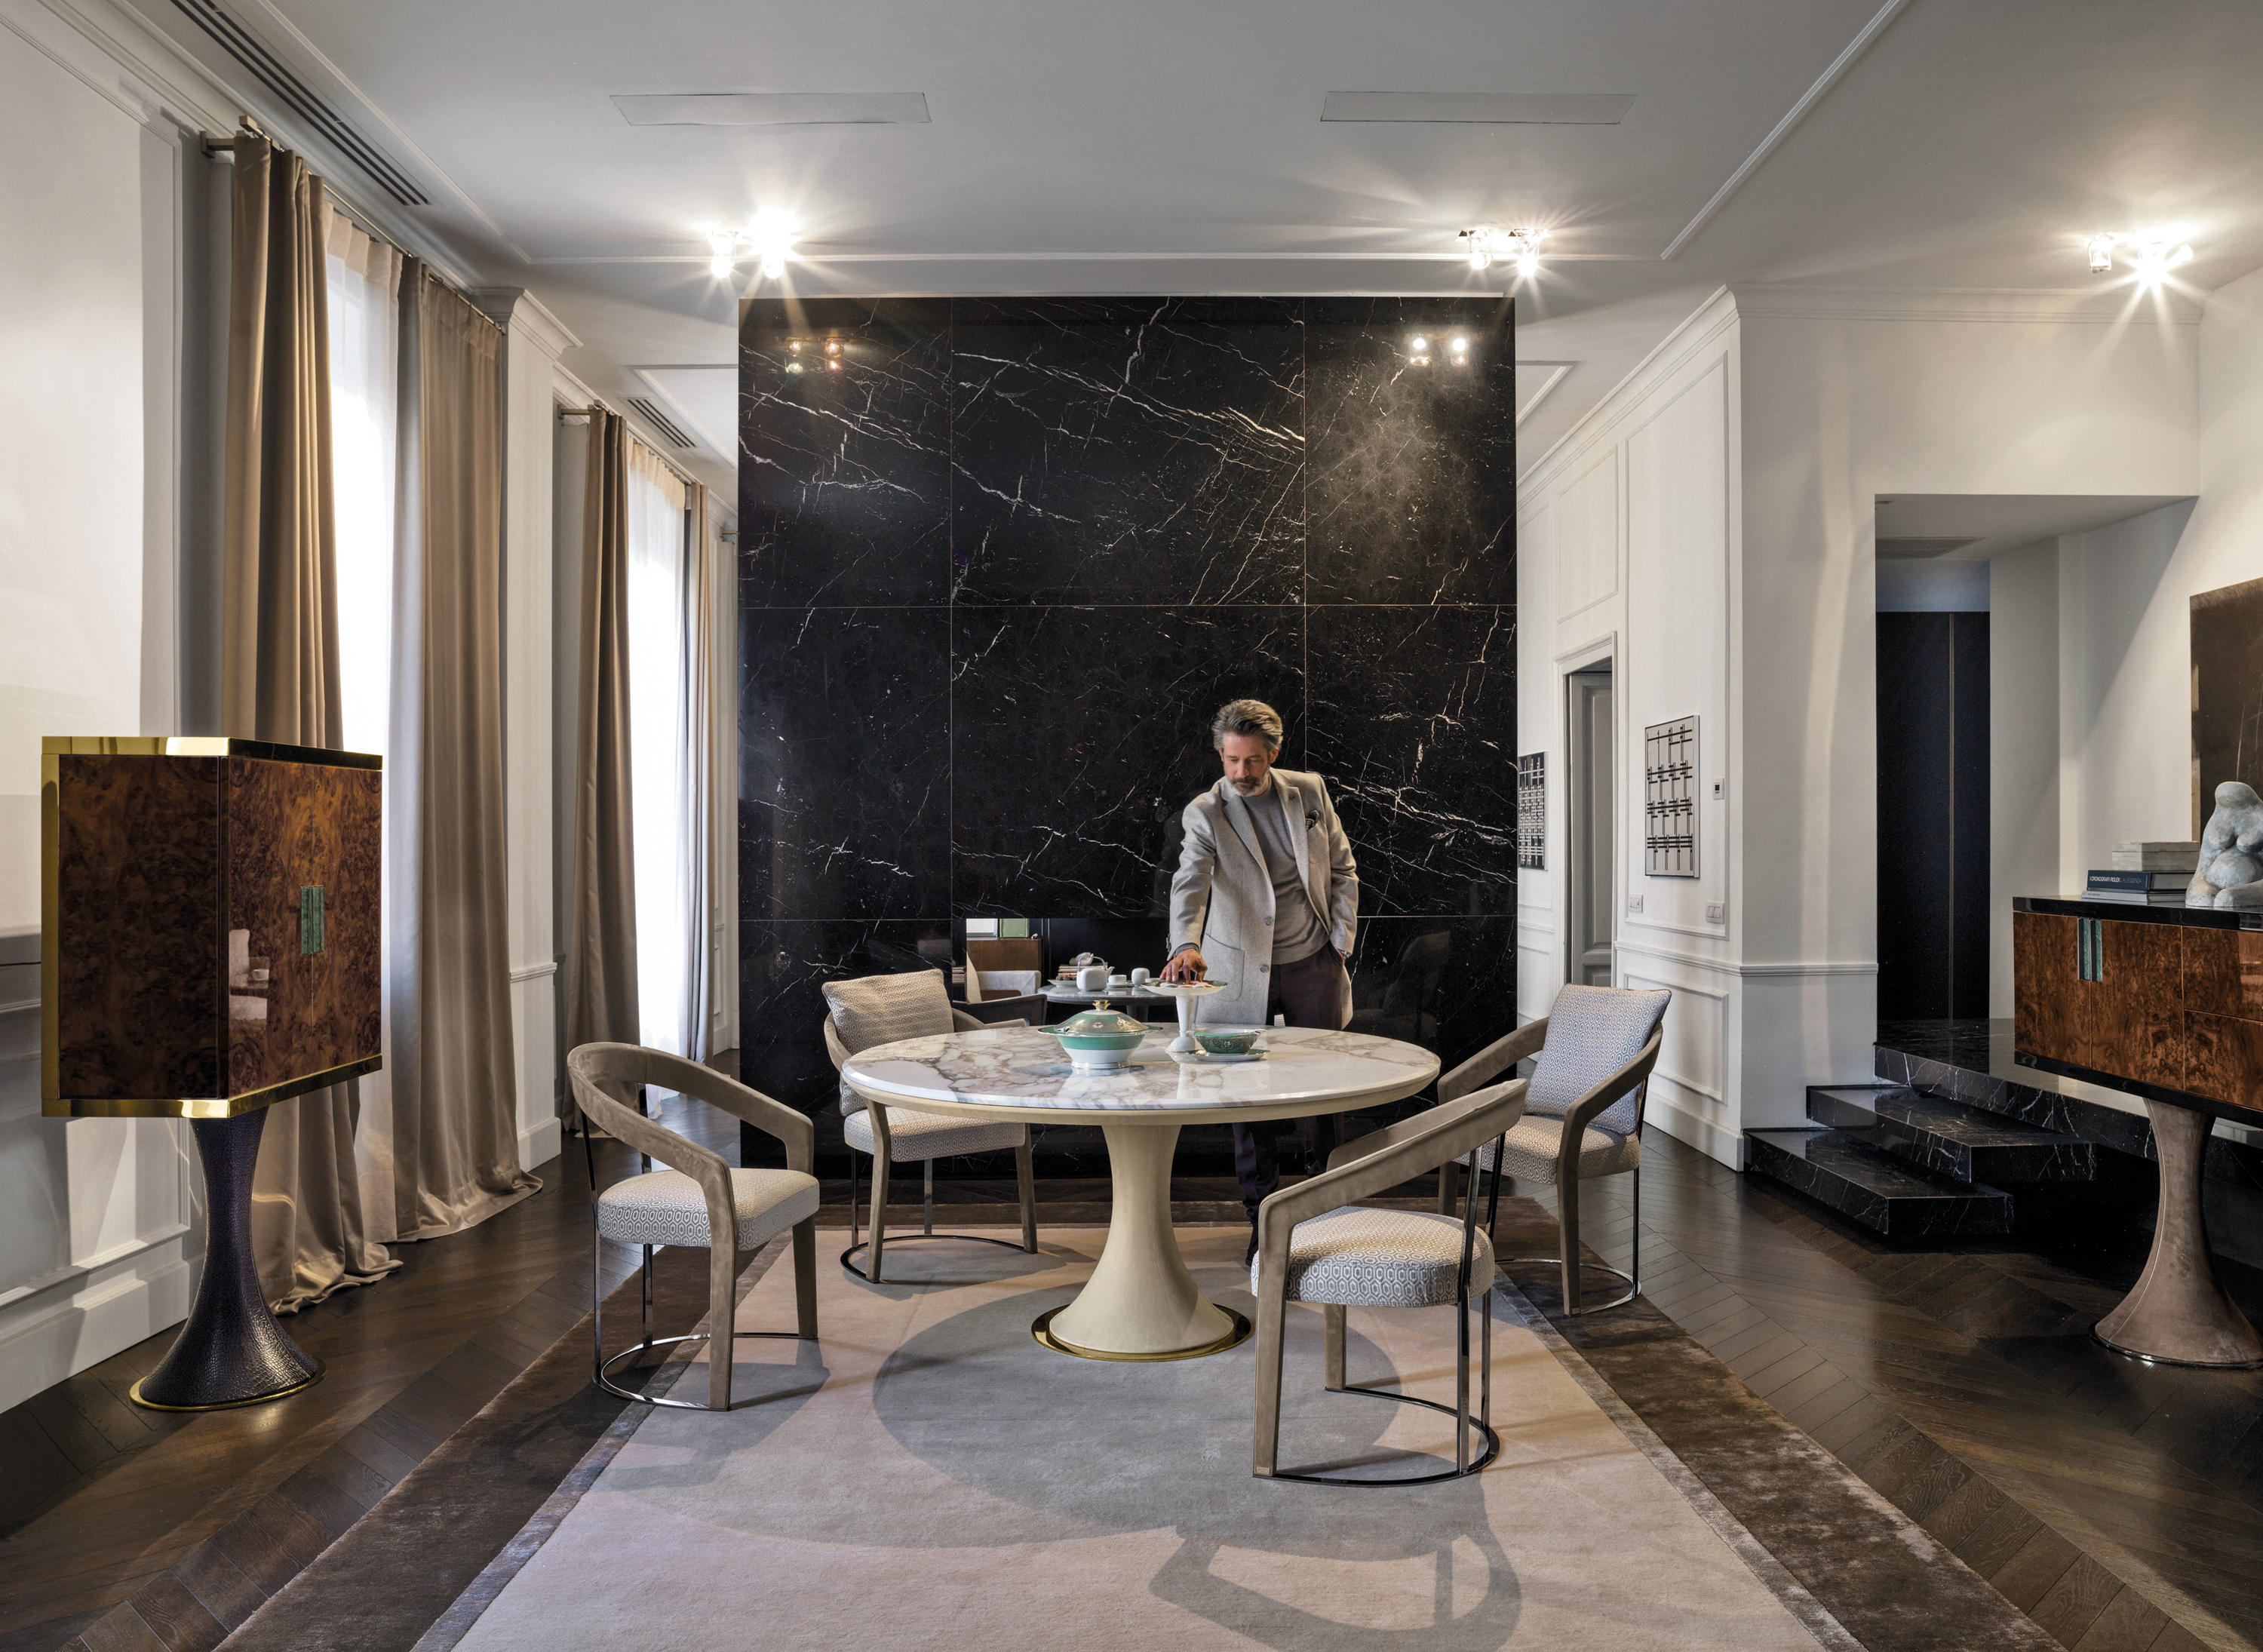 David Dining Tables From Longhi Spa Architonic